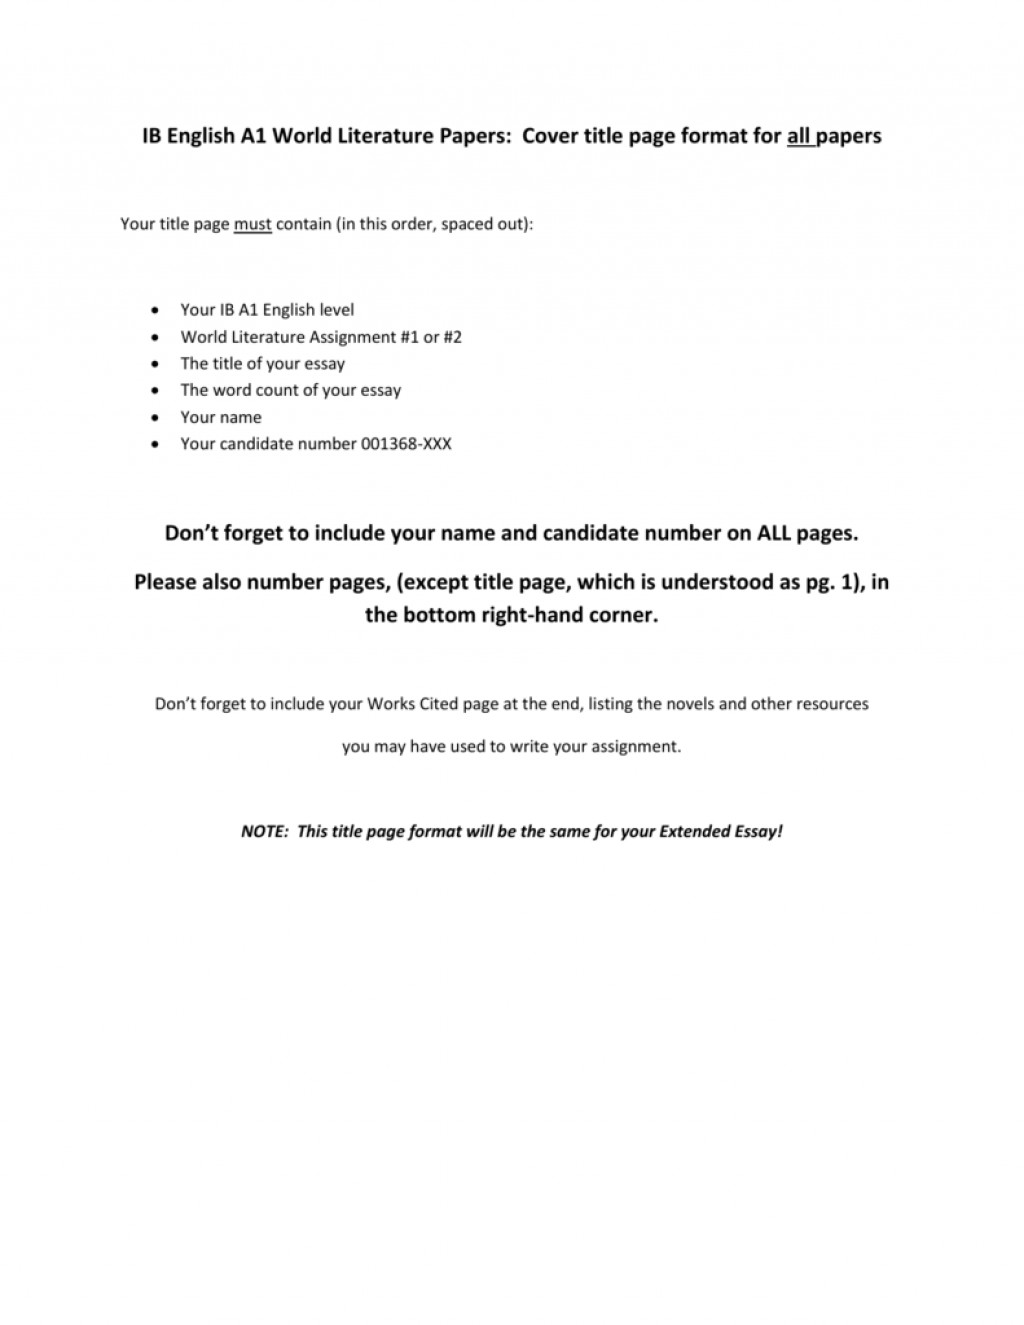 014 How To Write Numbers In An Essay Example 009545950 1 Frightening Do You Correct Way Large